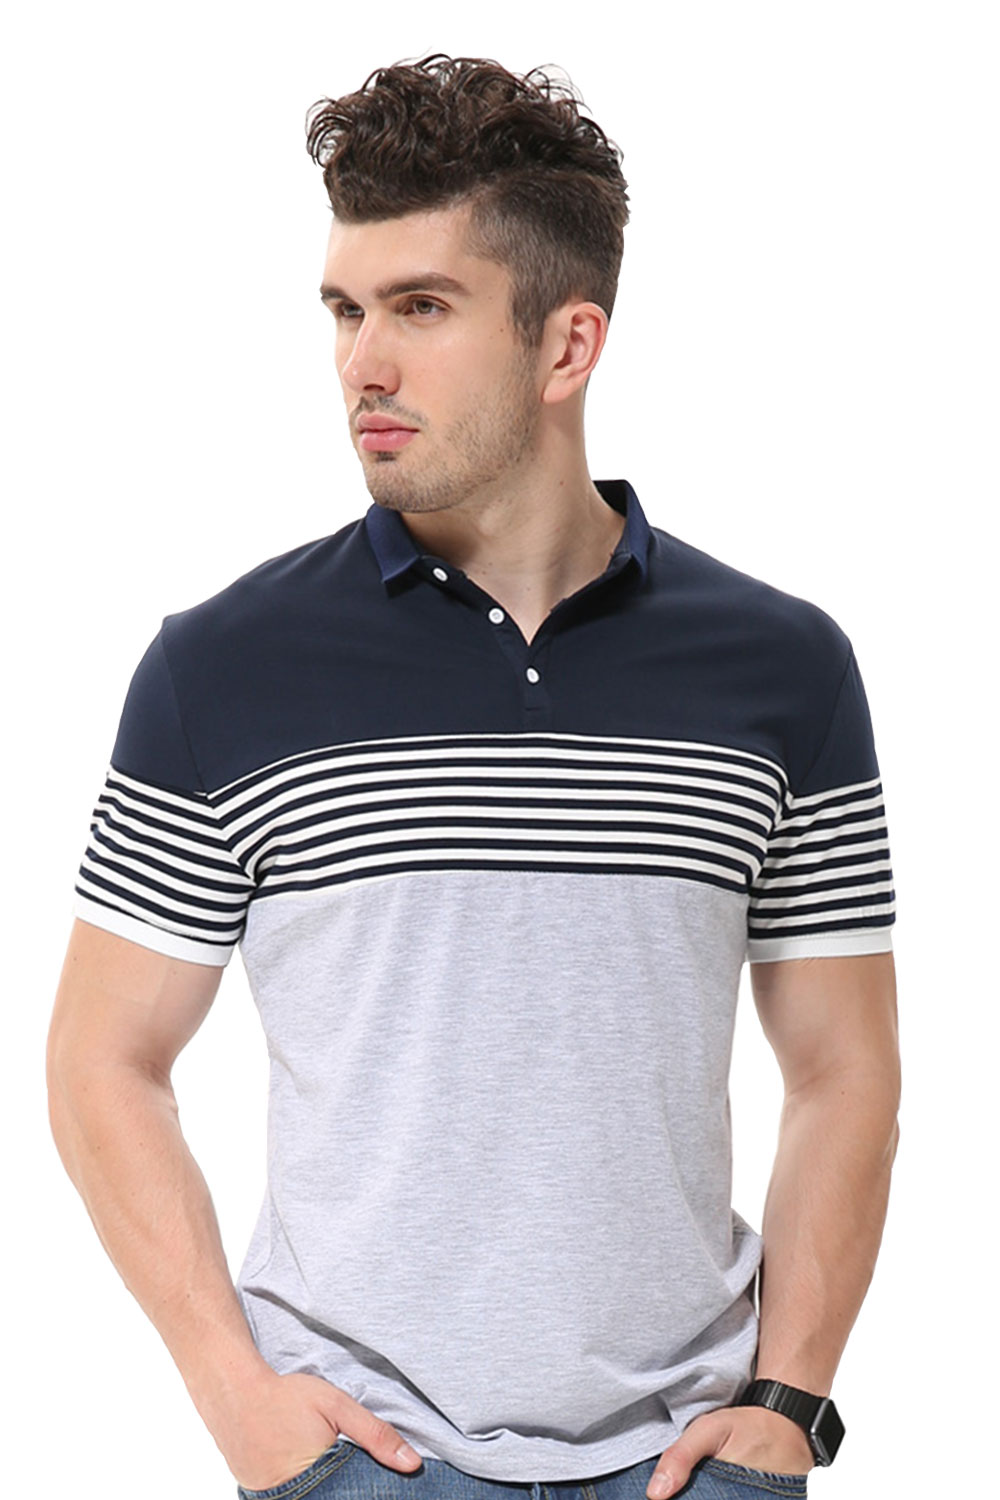 9bf2bbfd573d Fanideaz Branded Men s Half Sleeve Grey with White Contrast Striped Polo T  shirt